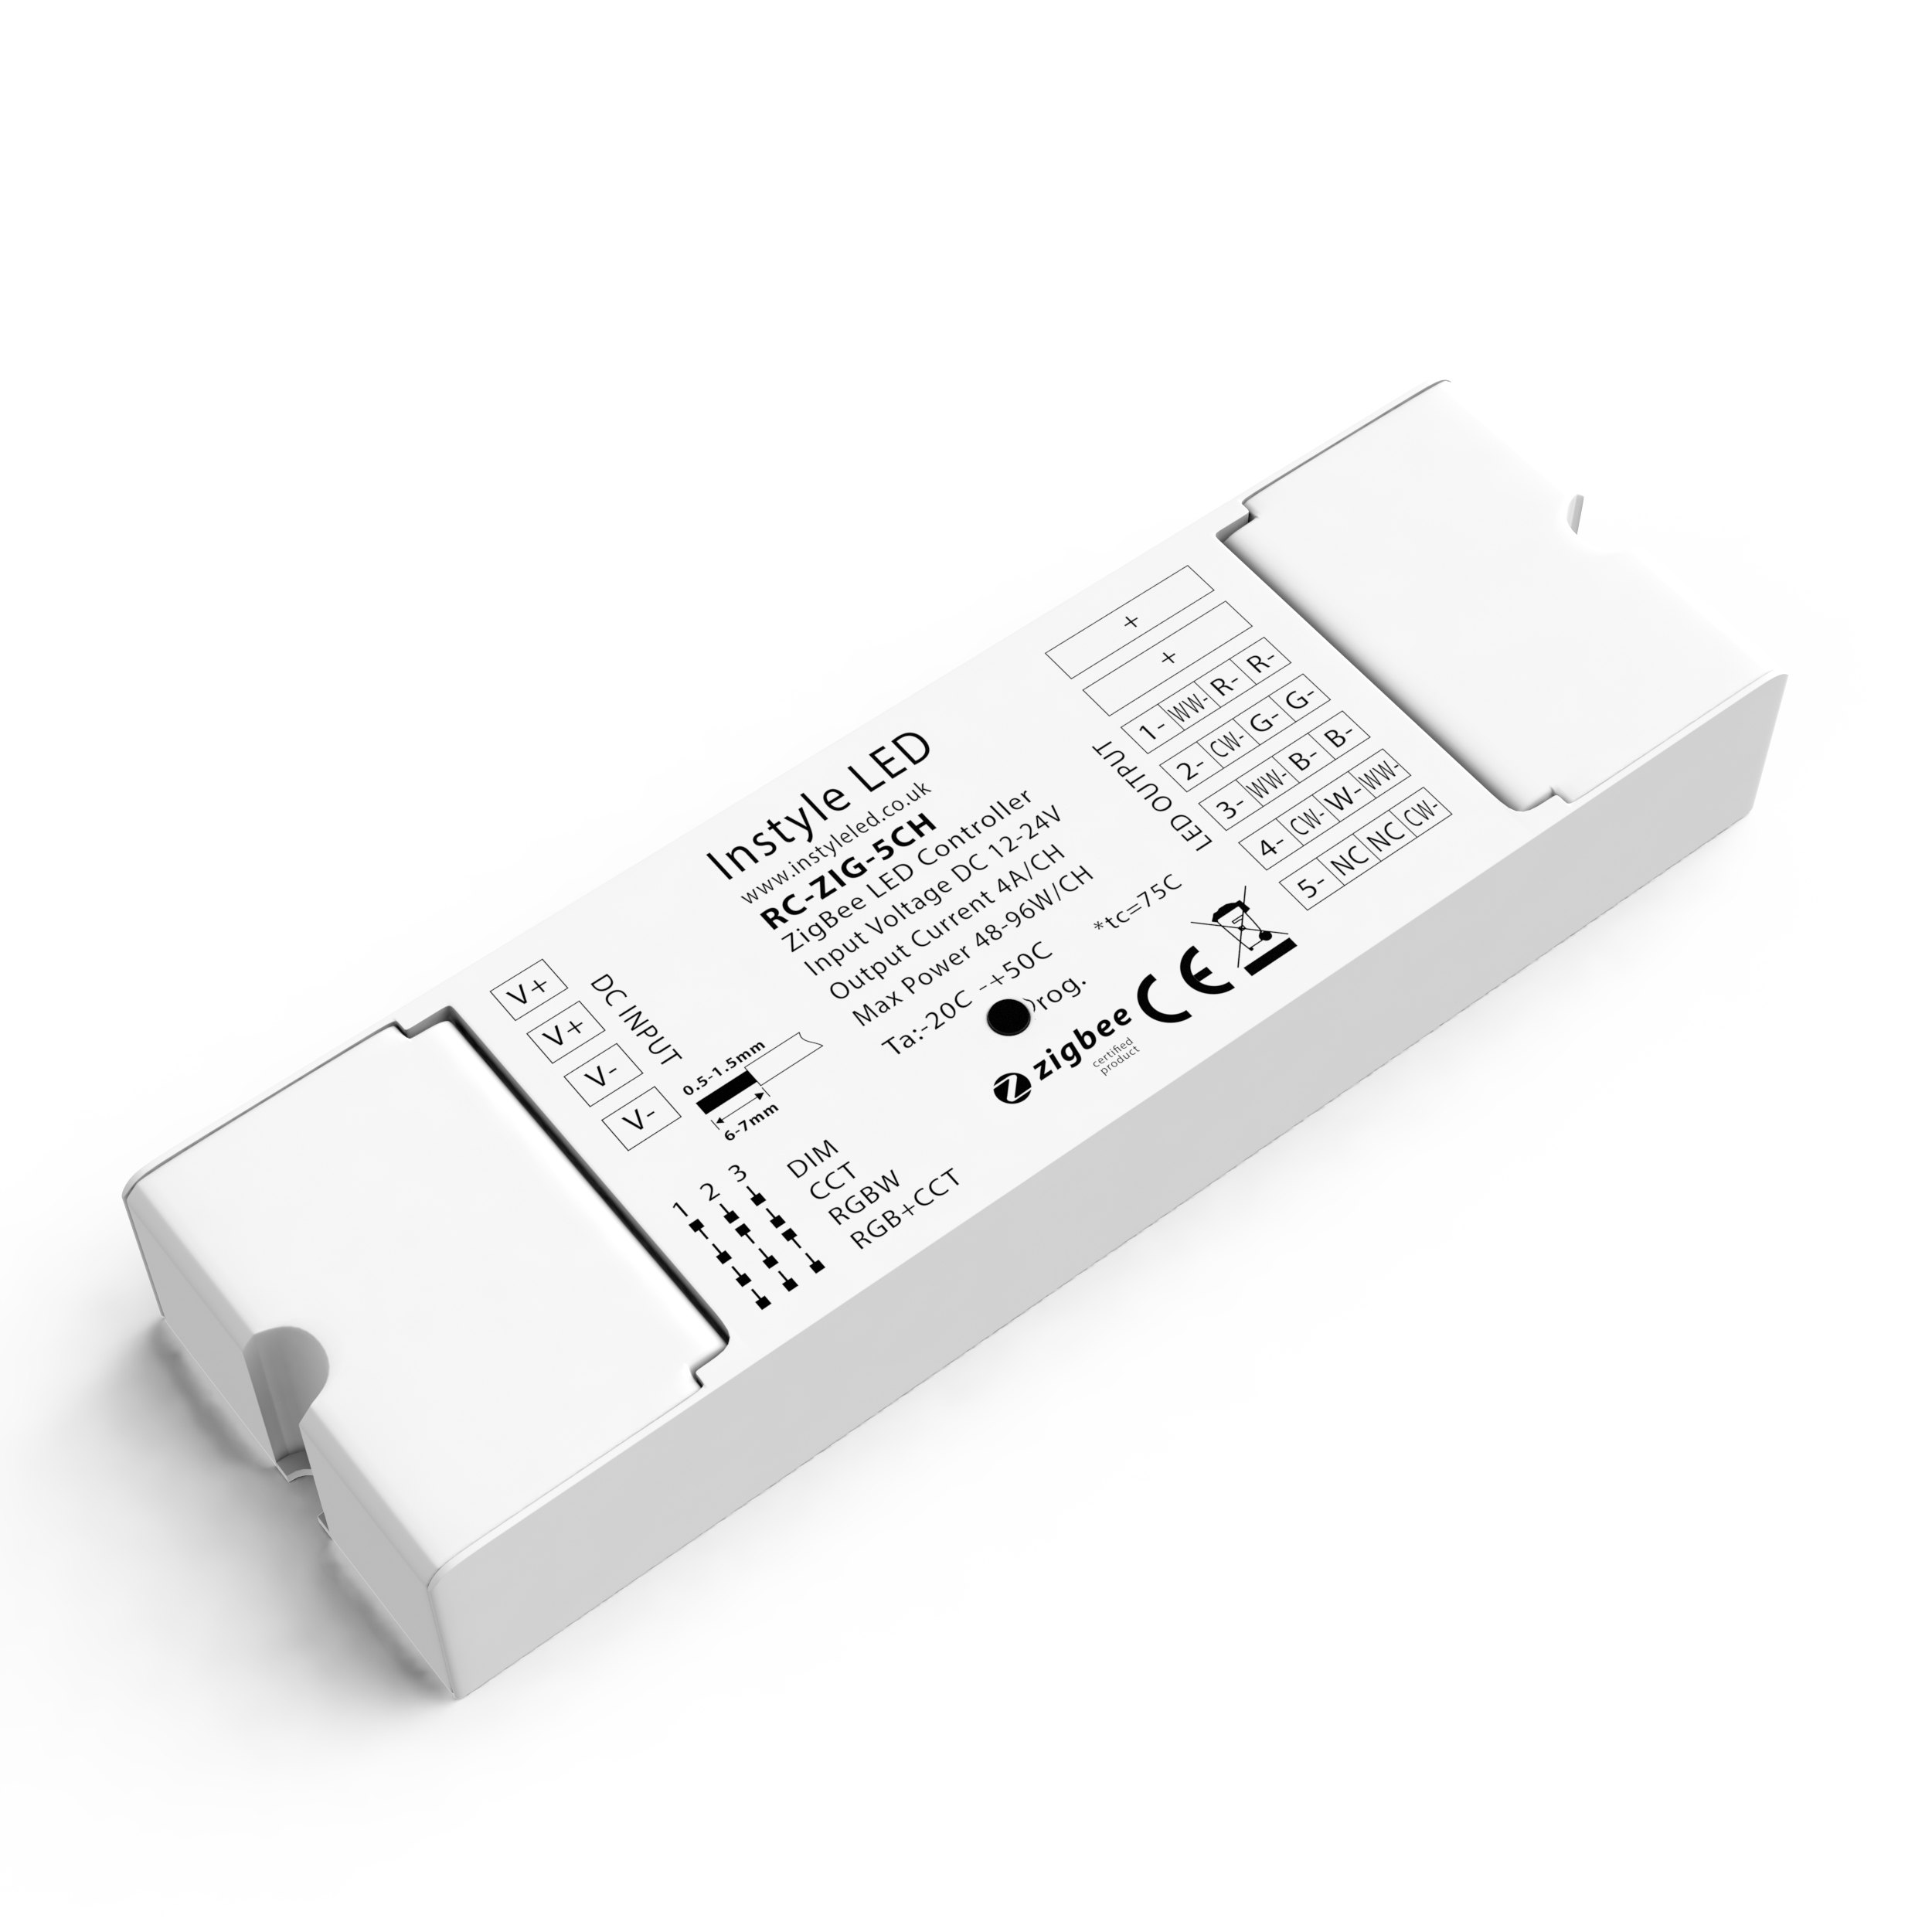 5-channel ZigBee RF receiver for LEDs